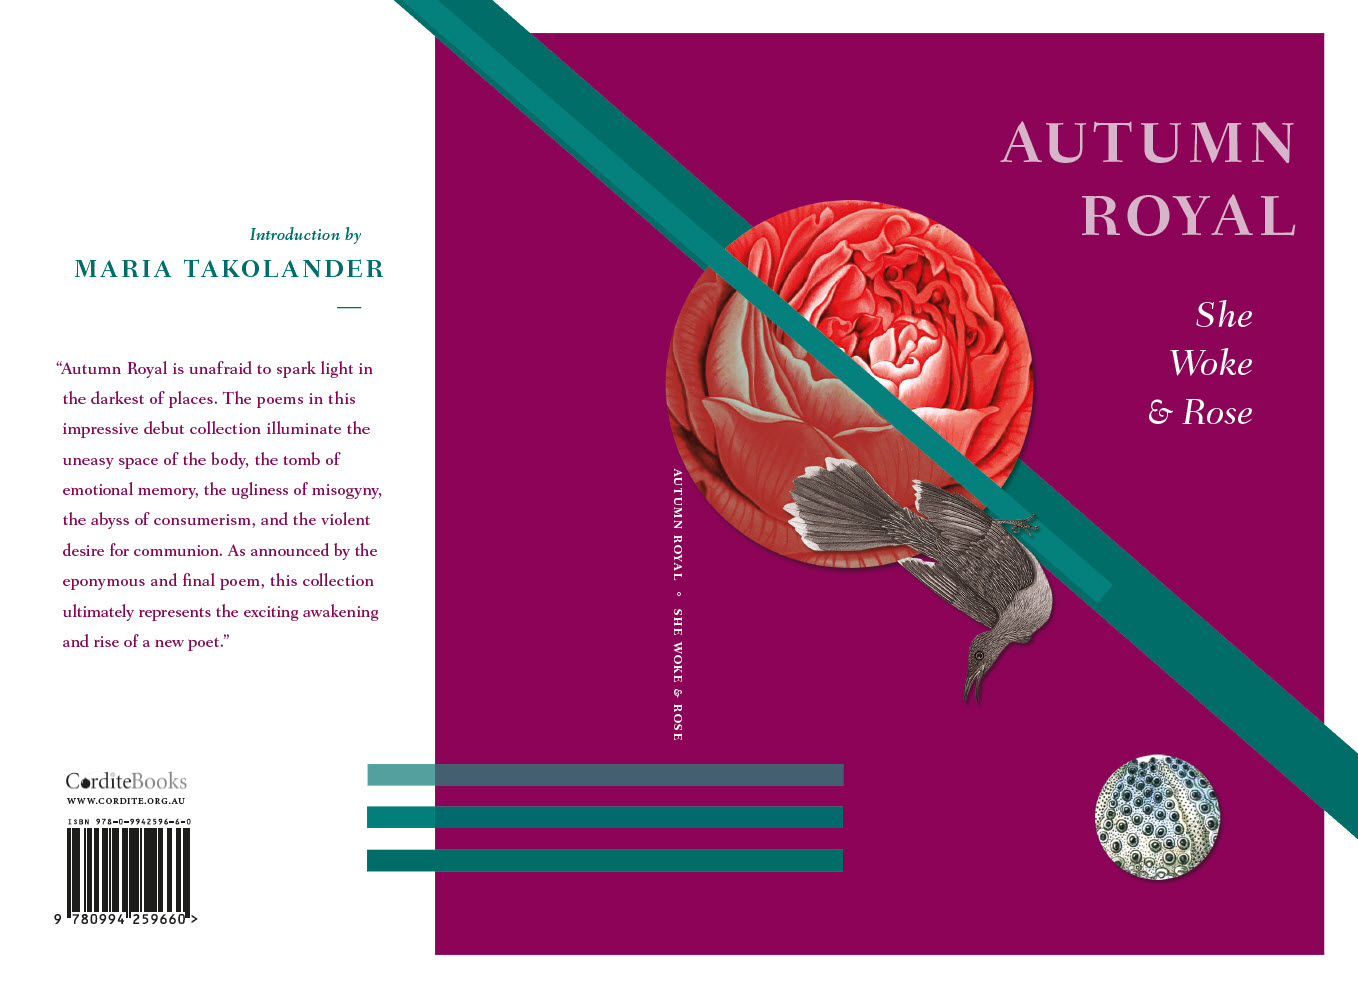 introduction to autumn royal s she woke rose cordite poetry review